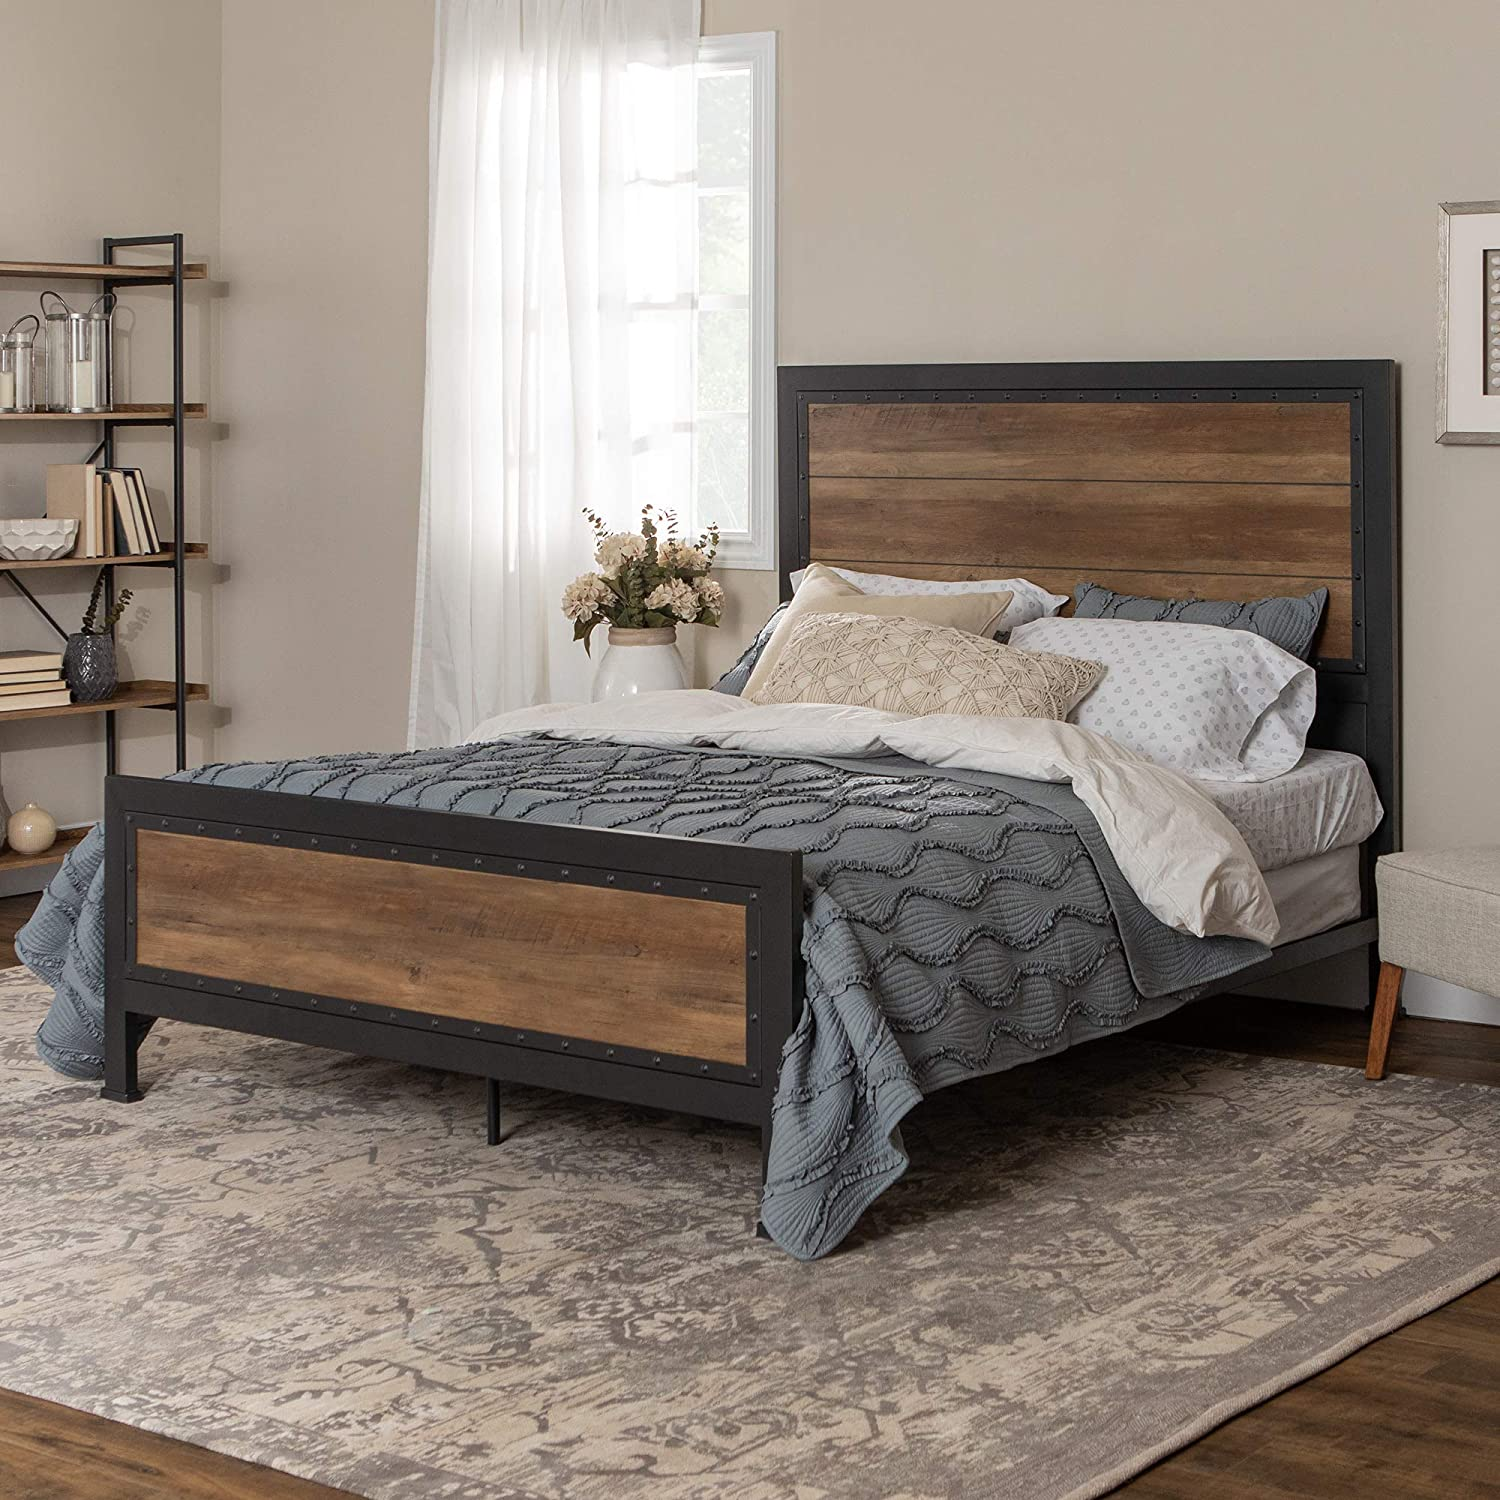 Home Accent Furnishings New Rustic Queen Industrial Wood and Metal Bed – Includes Head and Footboard